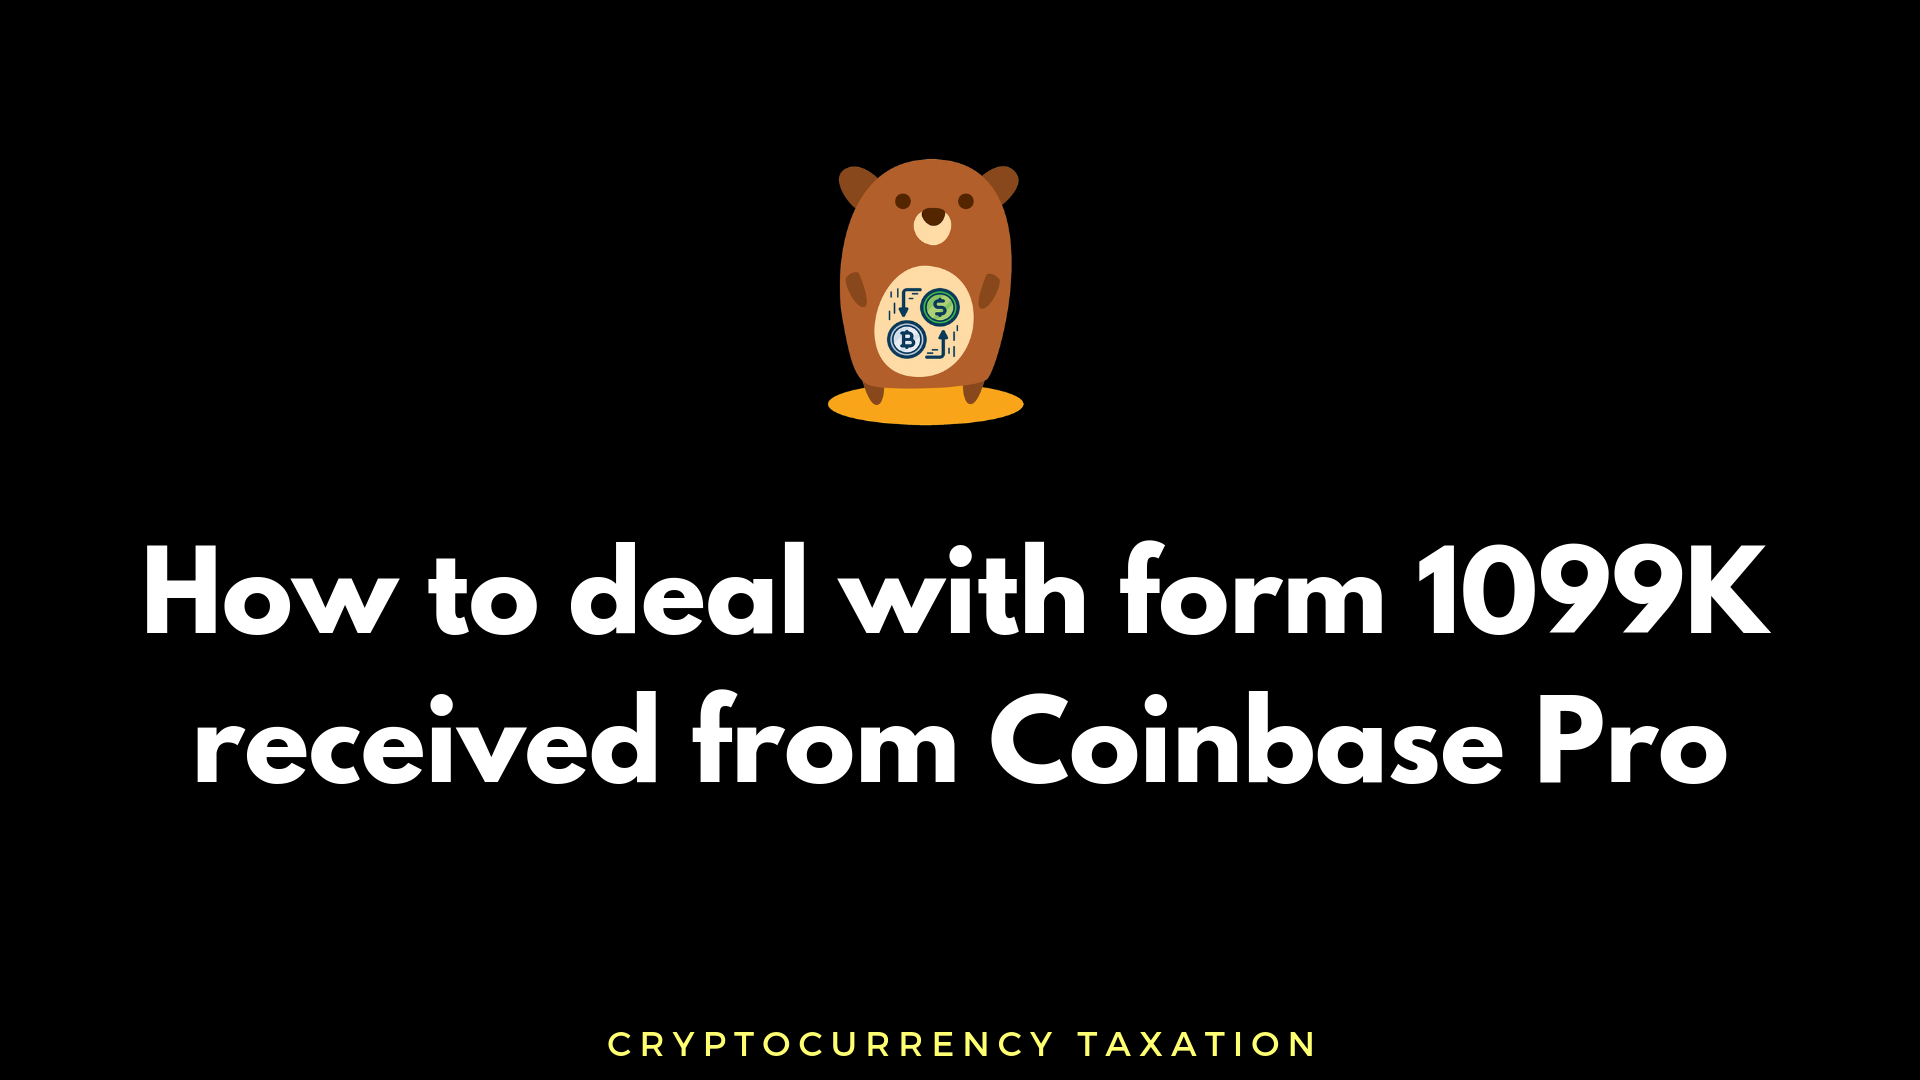 /how-to-deal-with-form-1099k-from-coinbase-or-coinbase-pro-for-tax-purpose-a3520eb7af3b feature image